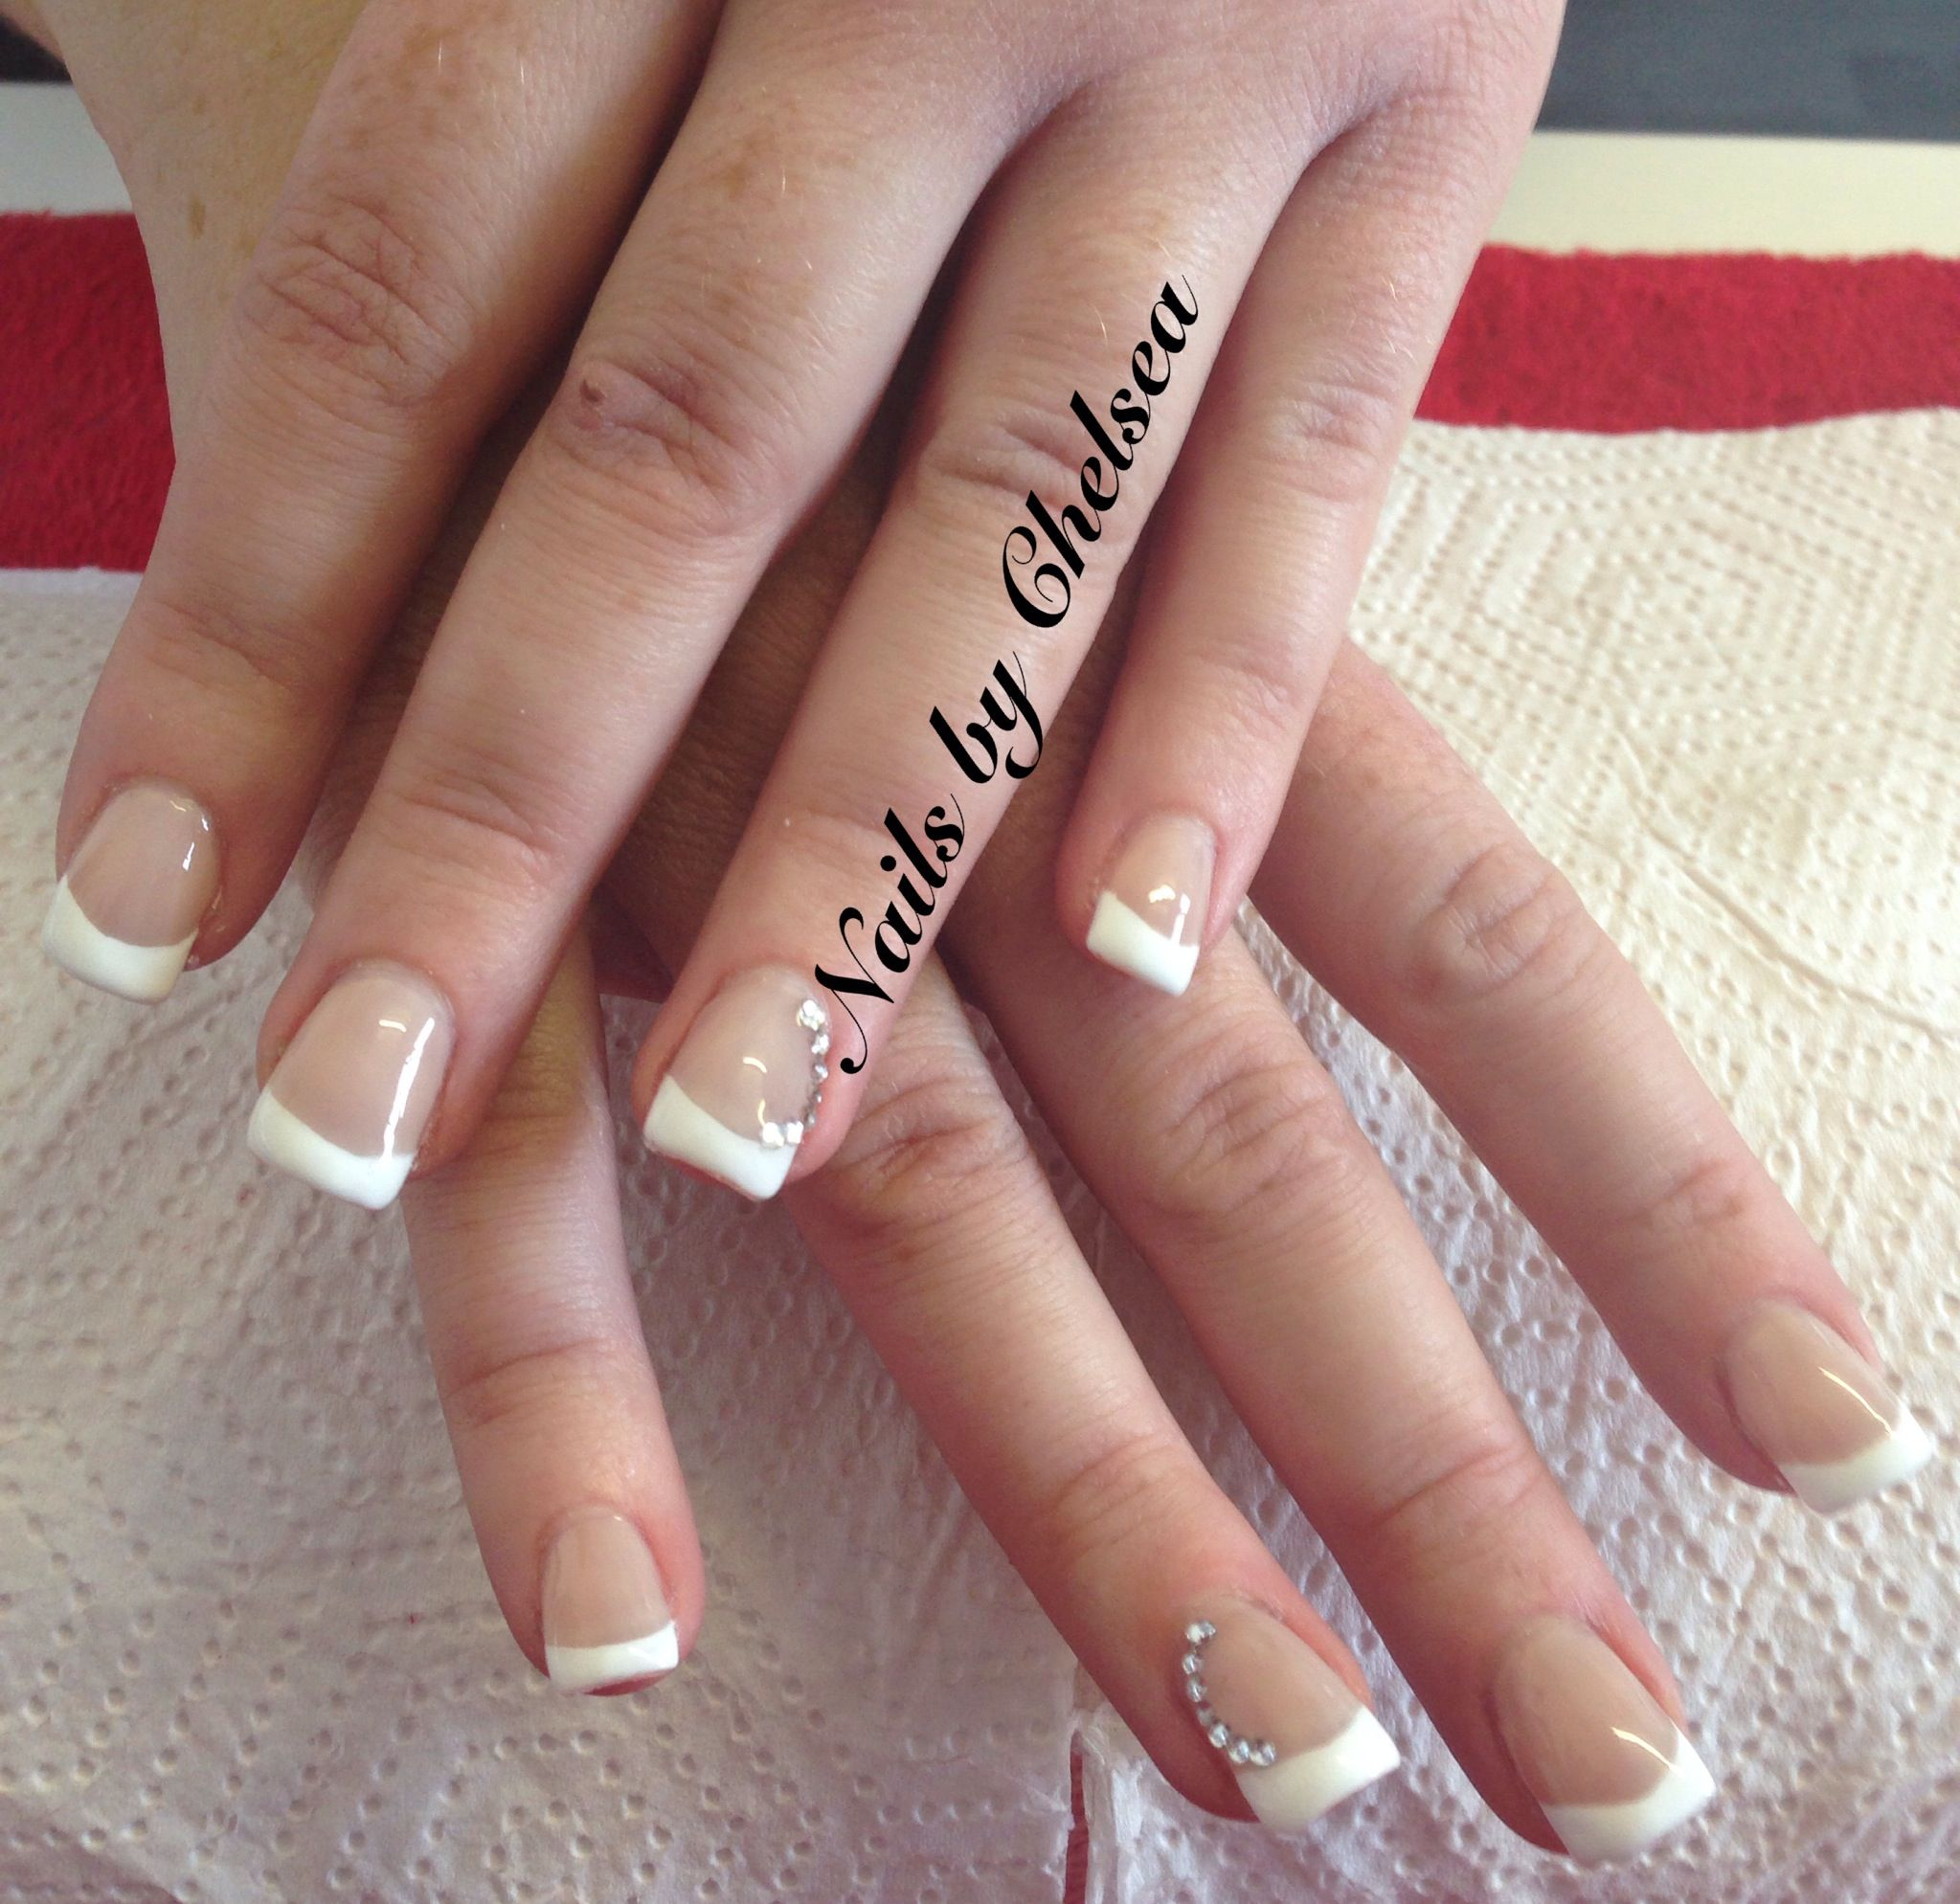 Classic White Tip With Diamont 233 Detail Nails By Chelsea At Hair Lounge Nail Art Nails Manicure